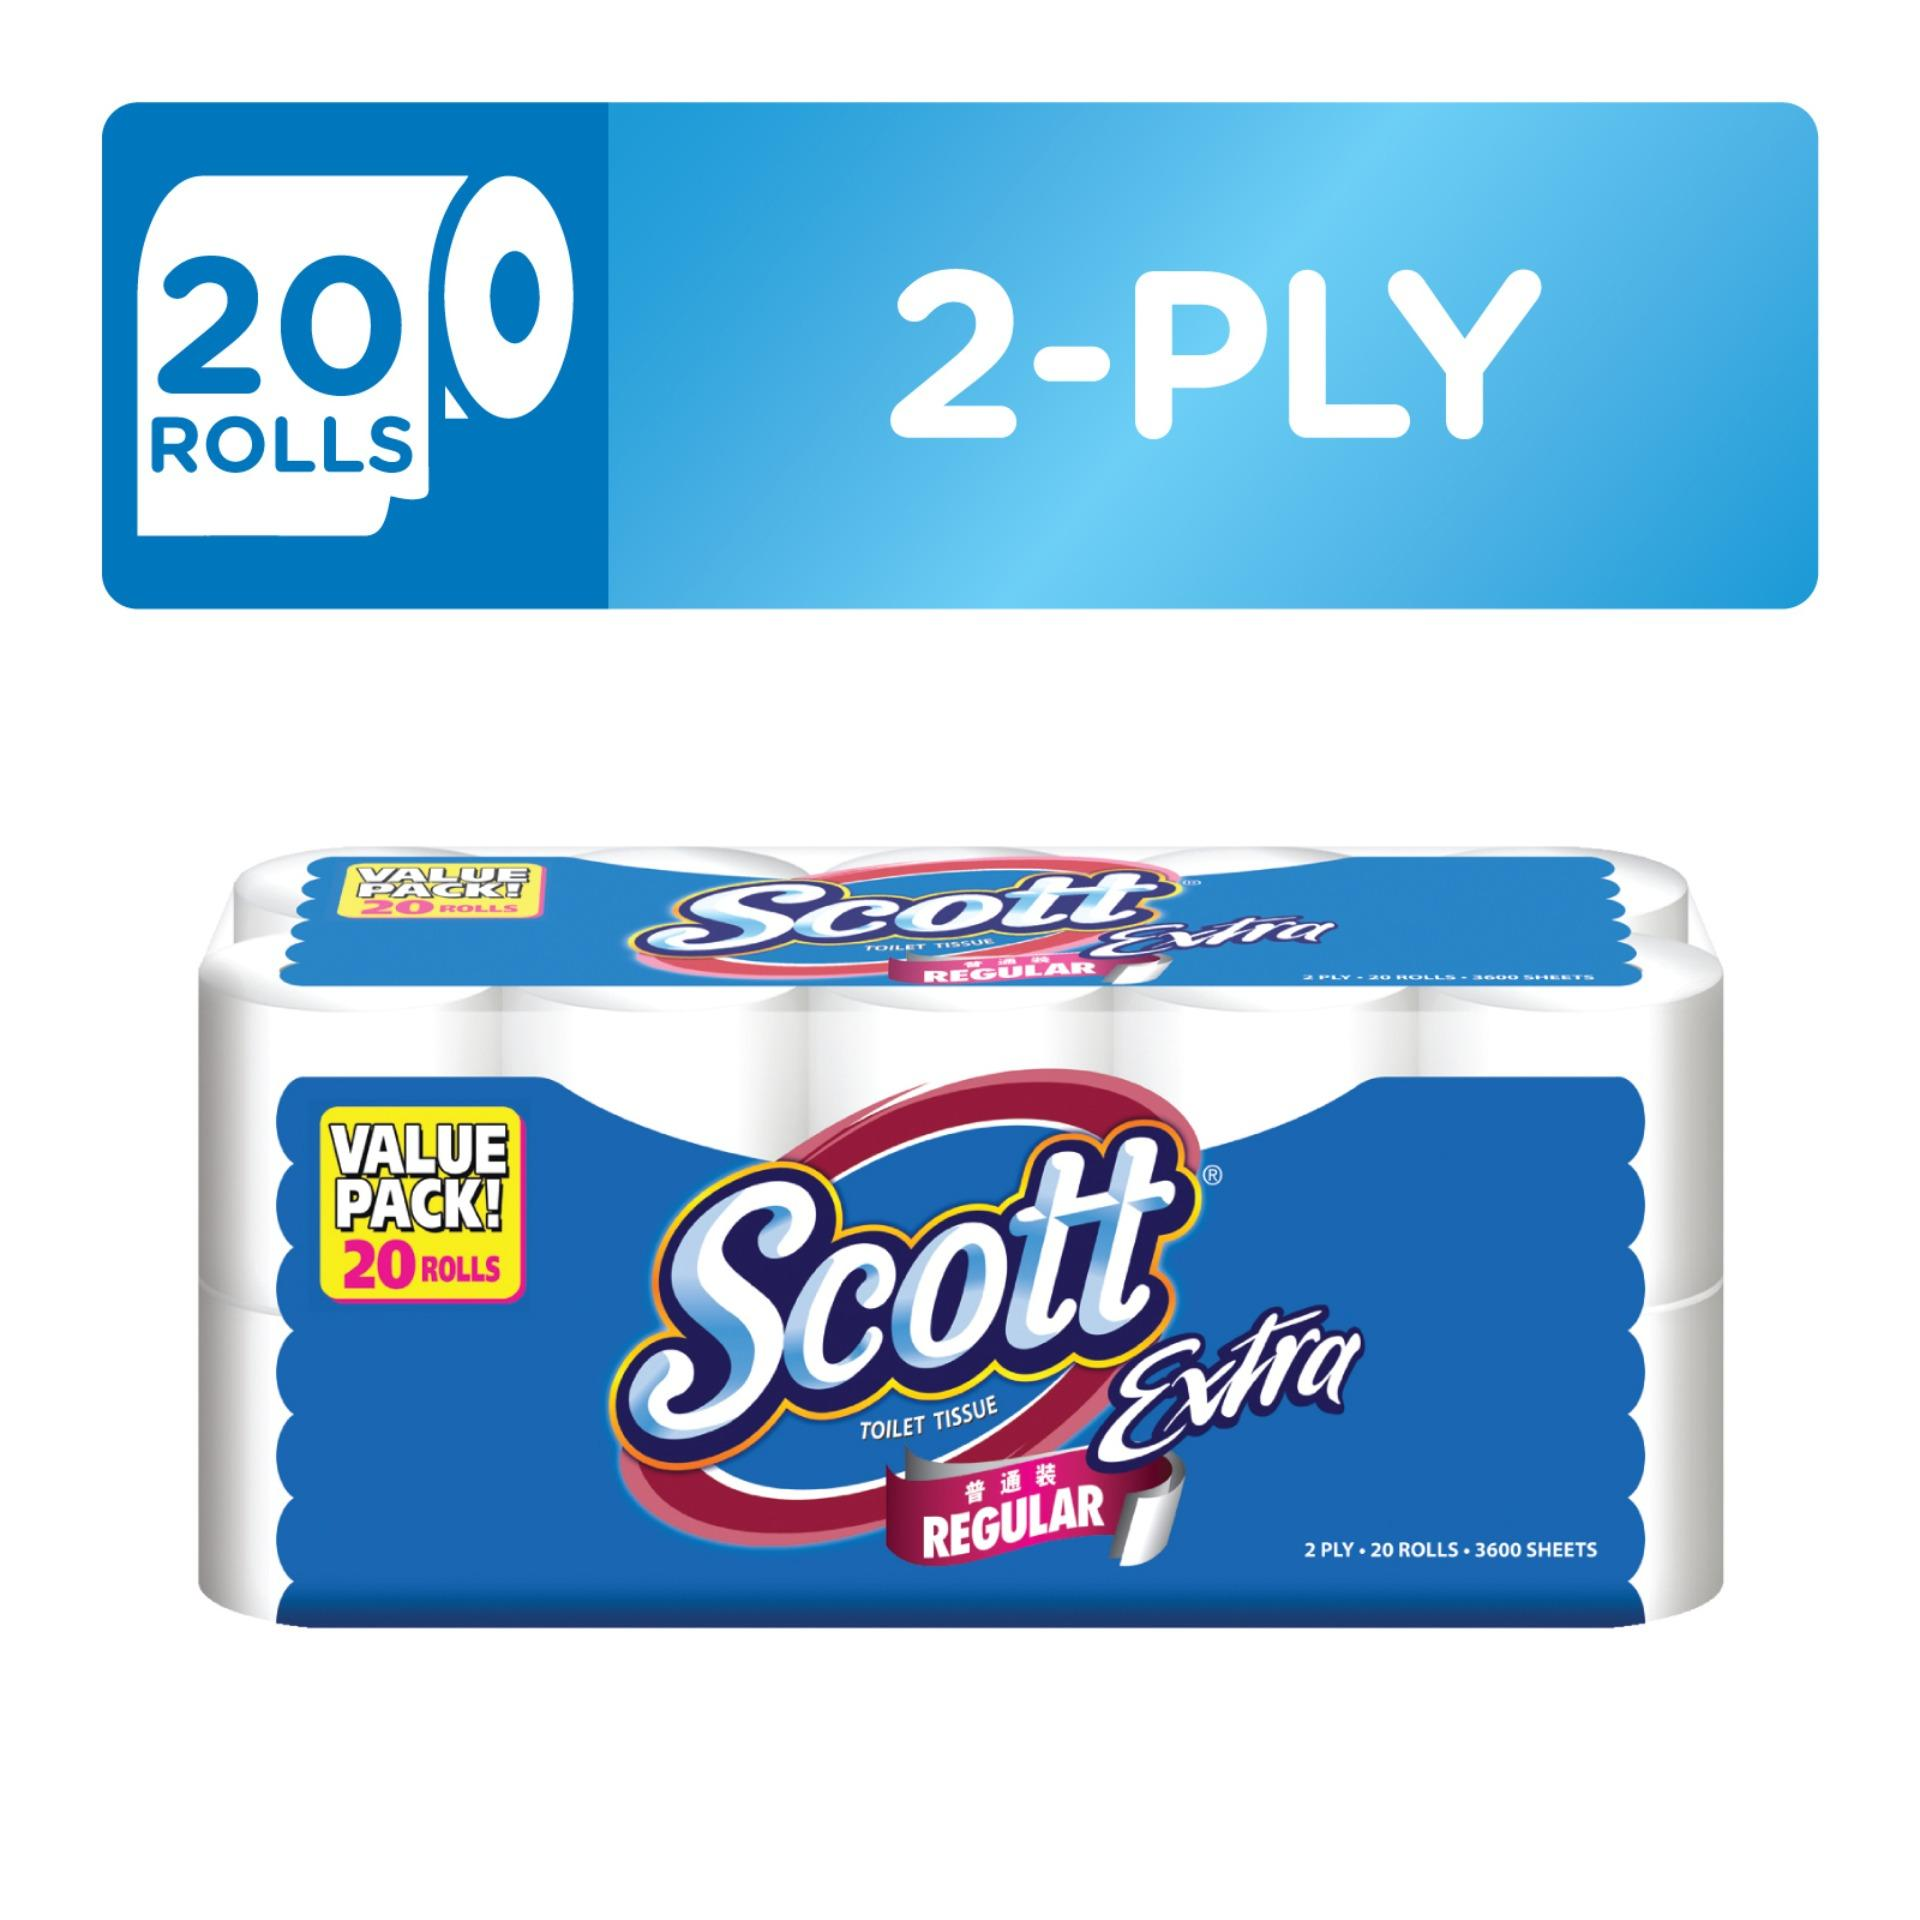 Scott Extra Toilet Tissue Regular 20x180sheets. By Kimberly Clark Official Store.